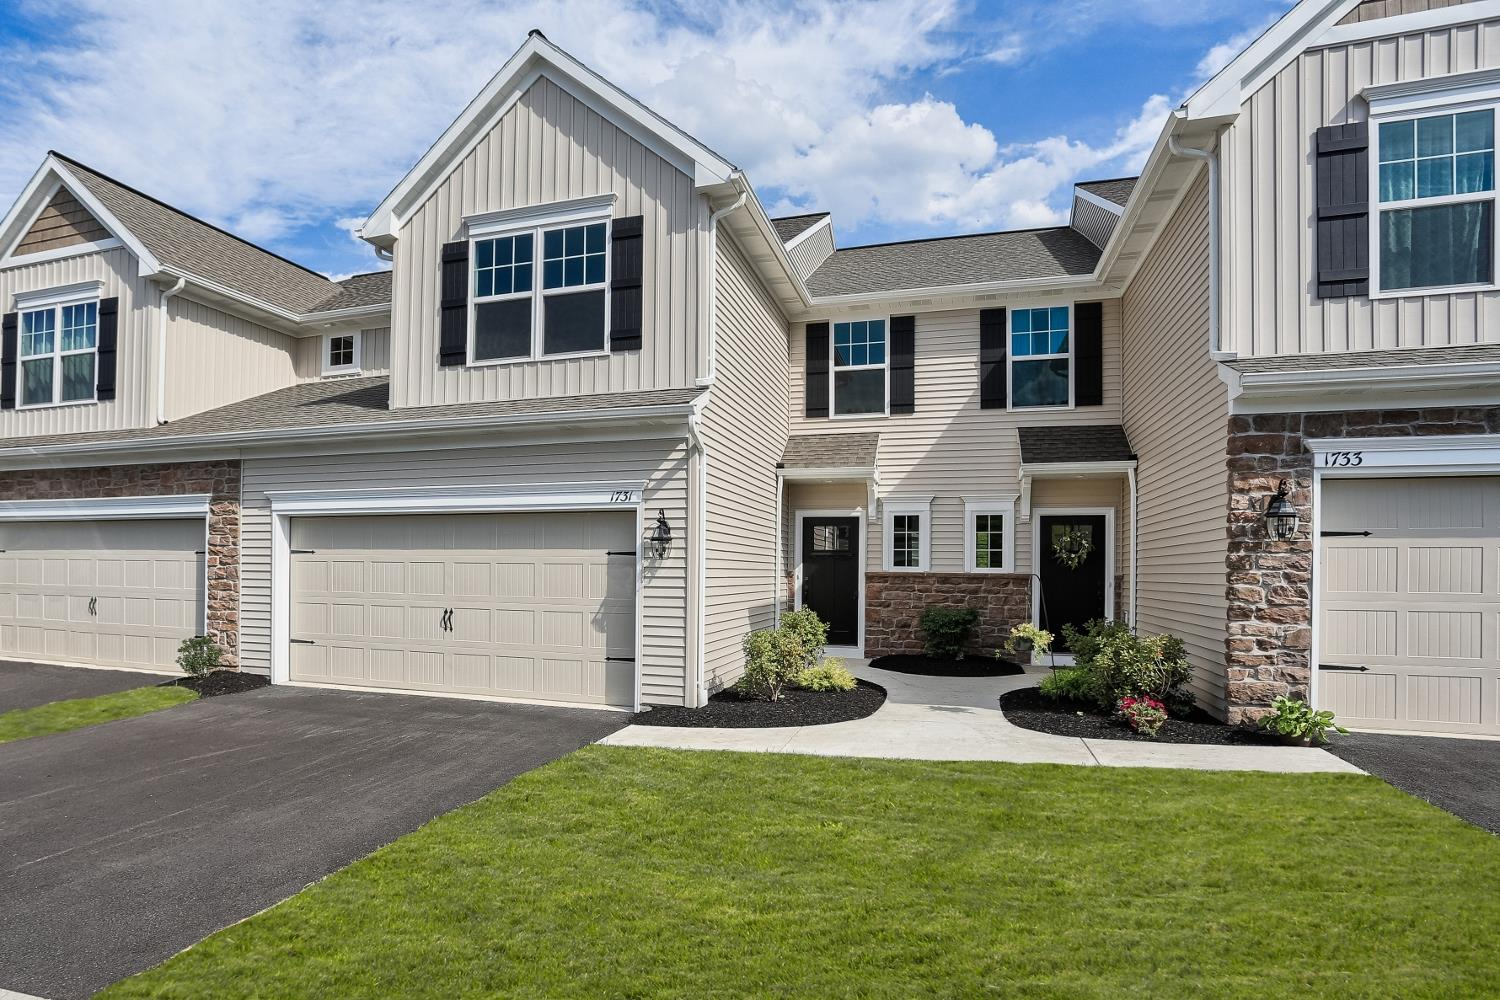 Orchard Glen Designer Townhomes In Mechanicsburg, PA | New Homes, Plans,  Units, Prices